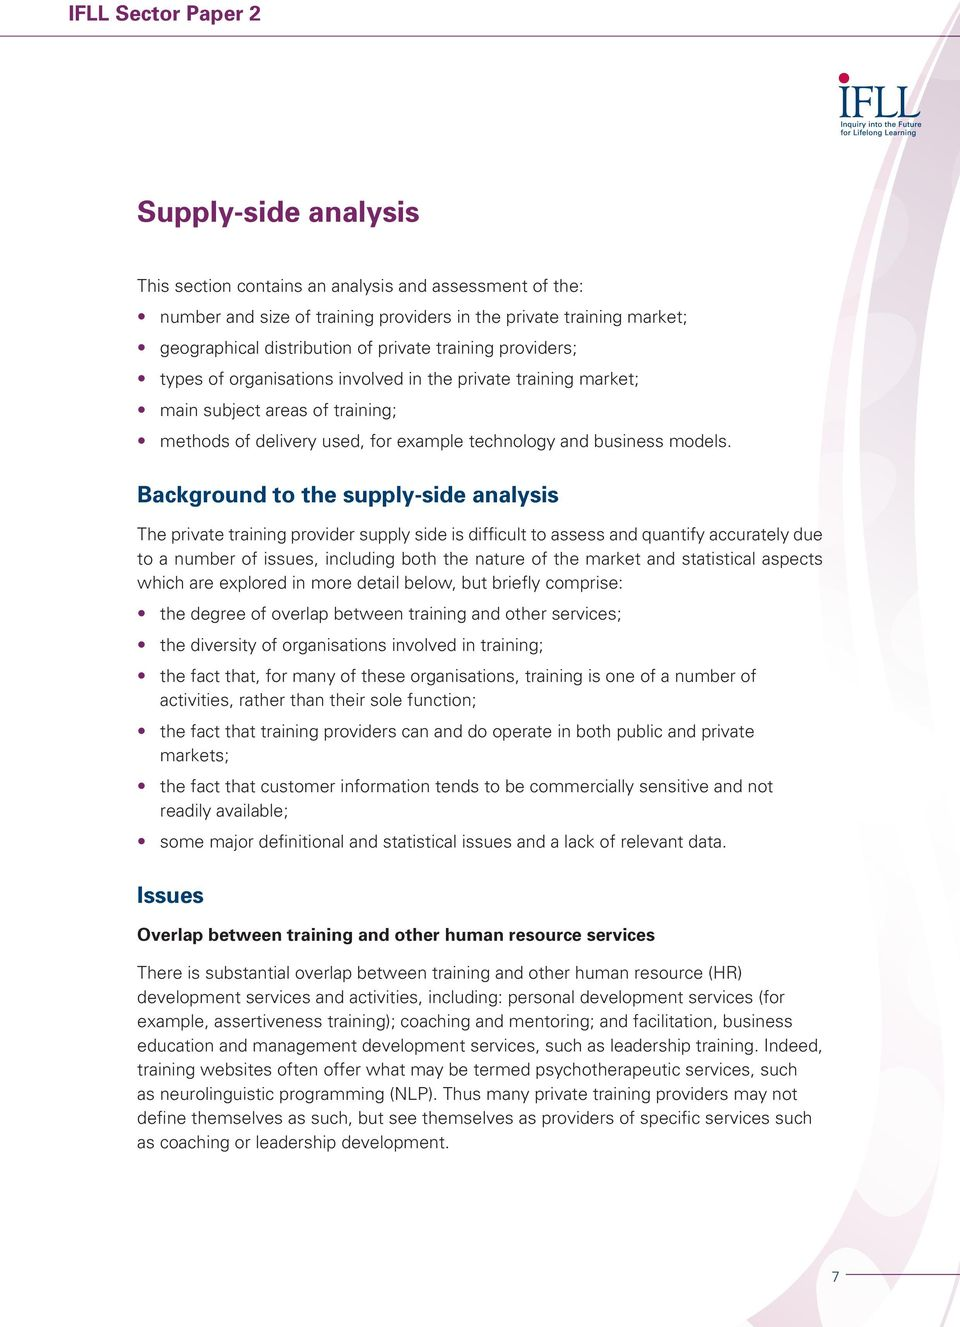 Background to the supply-side analysis The private training provider supply side is difficult to assess and quantify accurately due to a number of issues, including both the nature of the market and